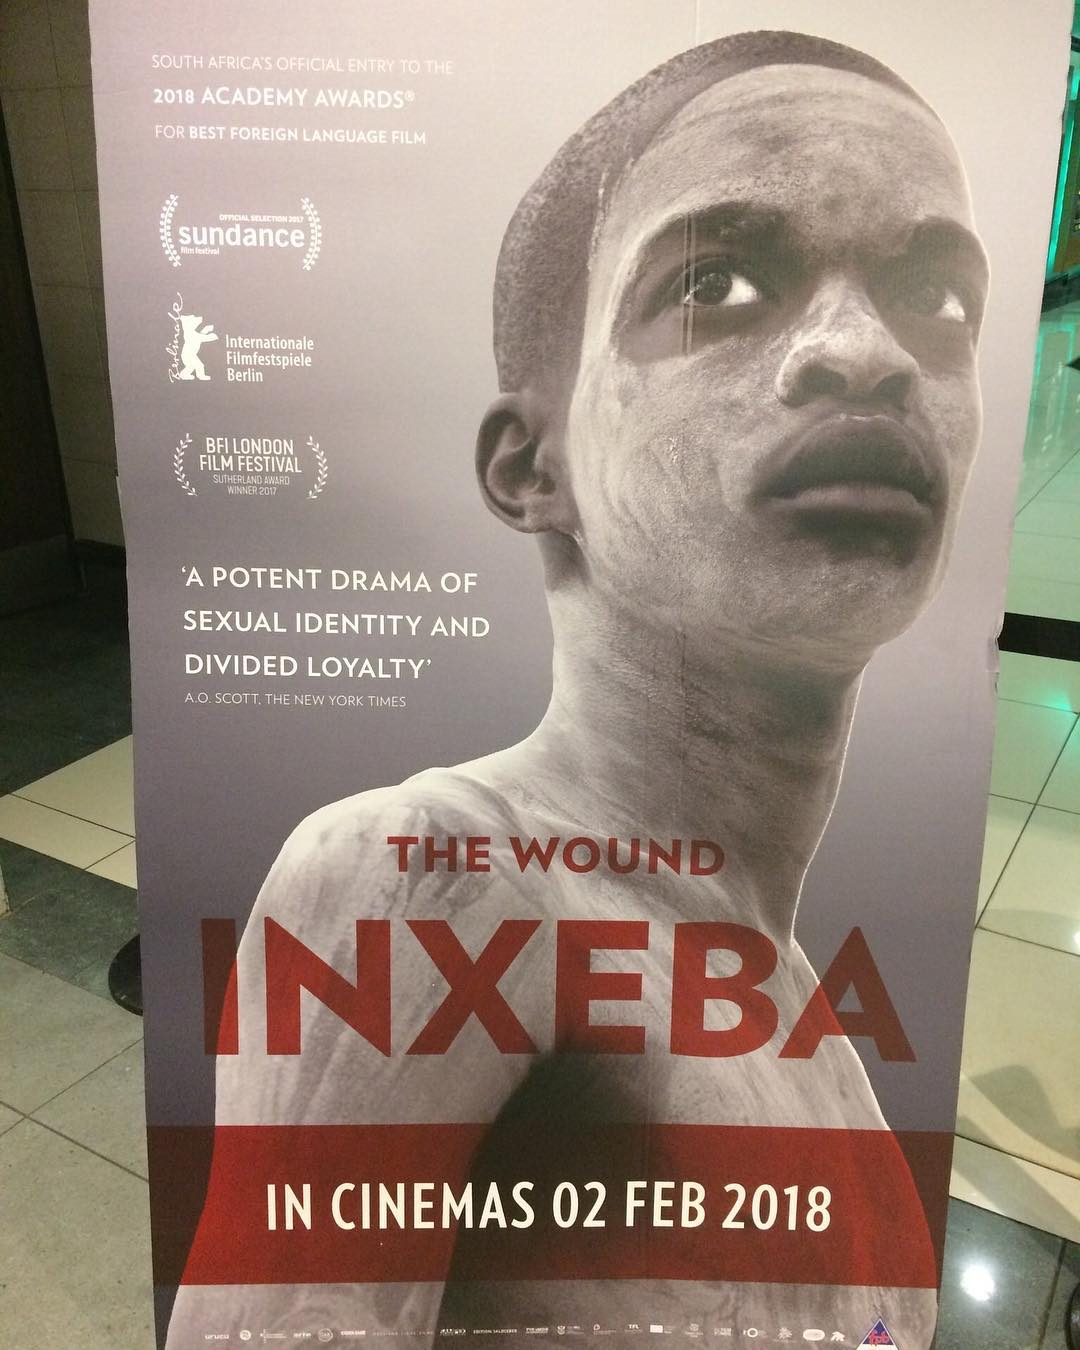 X-rated ban on Inxeba lifted by Pretoria High Court